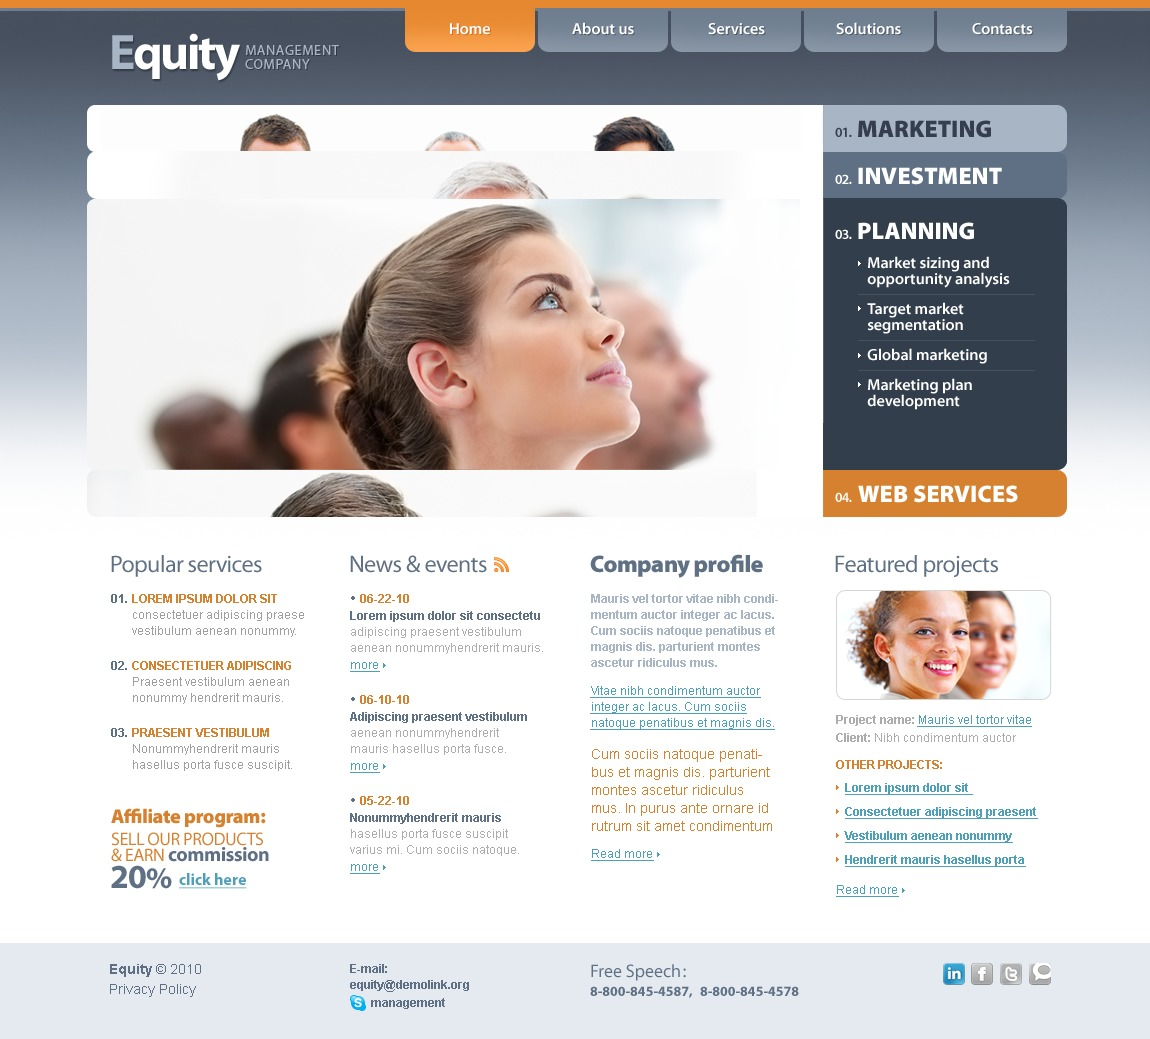 The Equity Business Company PSD Design 54195, one of the best PSD templates of its kind (business, flash 8, wide), also known as equity business company PSD template, corporate solutions PSD template, innovations PSD template, contacts PSD template, service PSD template, support PSD template, information dealer PSD template, stocks PSD template, team PSD template, success PSD template, money PSD template, marketing PSD template, director PSD template, manager PSD template, analytics PSD template, planning PSD template, limited PSD template, office PSD template, sales and related with equity business company, corporate solutions, innovations, contacts, service, support, information dealer, stocks, team, success, money, marketing, director, manager, analytics, planning, limited, office, sales, etc.